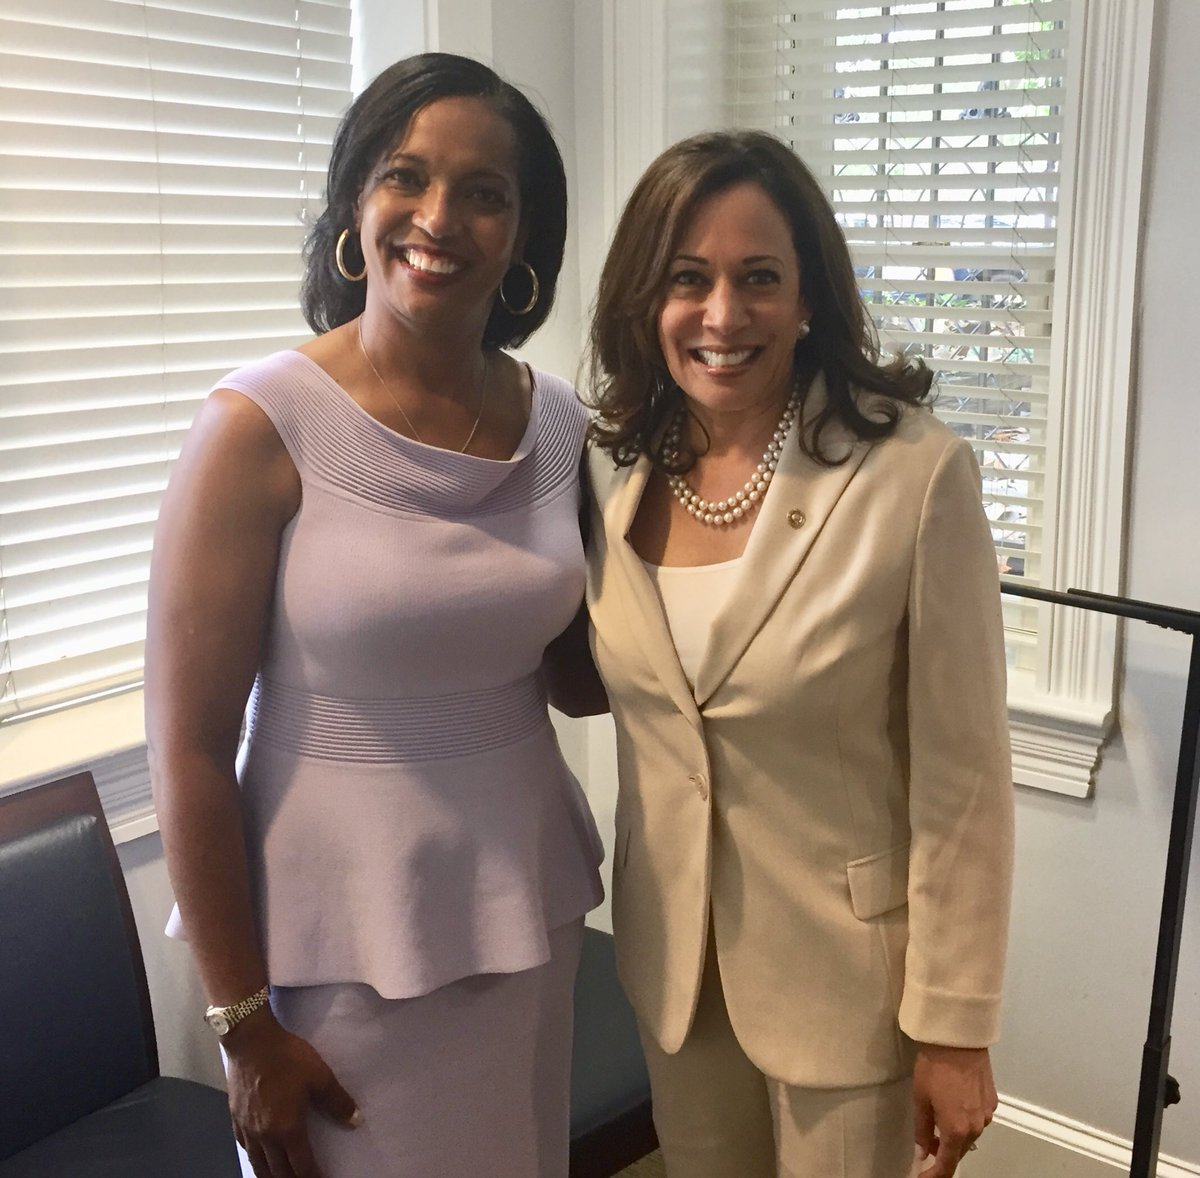 Hayes endorses Harris as 'perfect antidote' to Trump